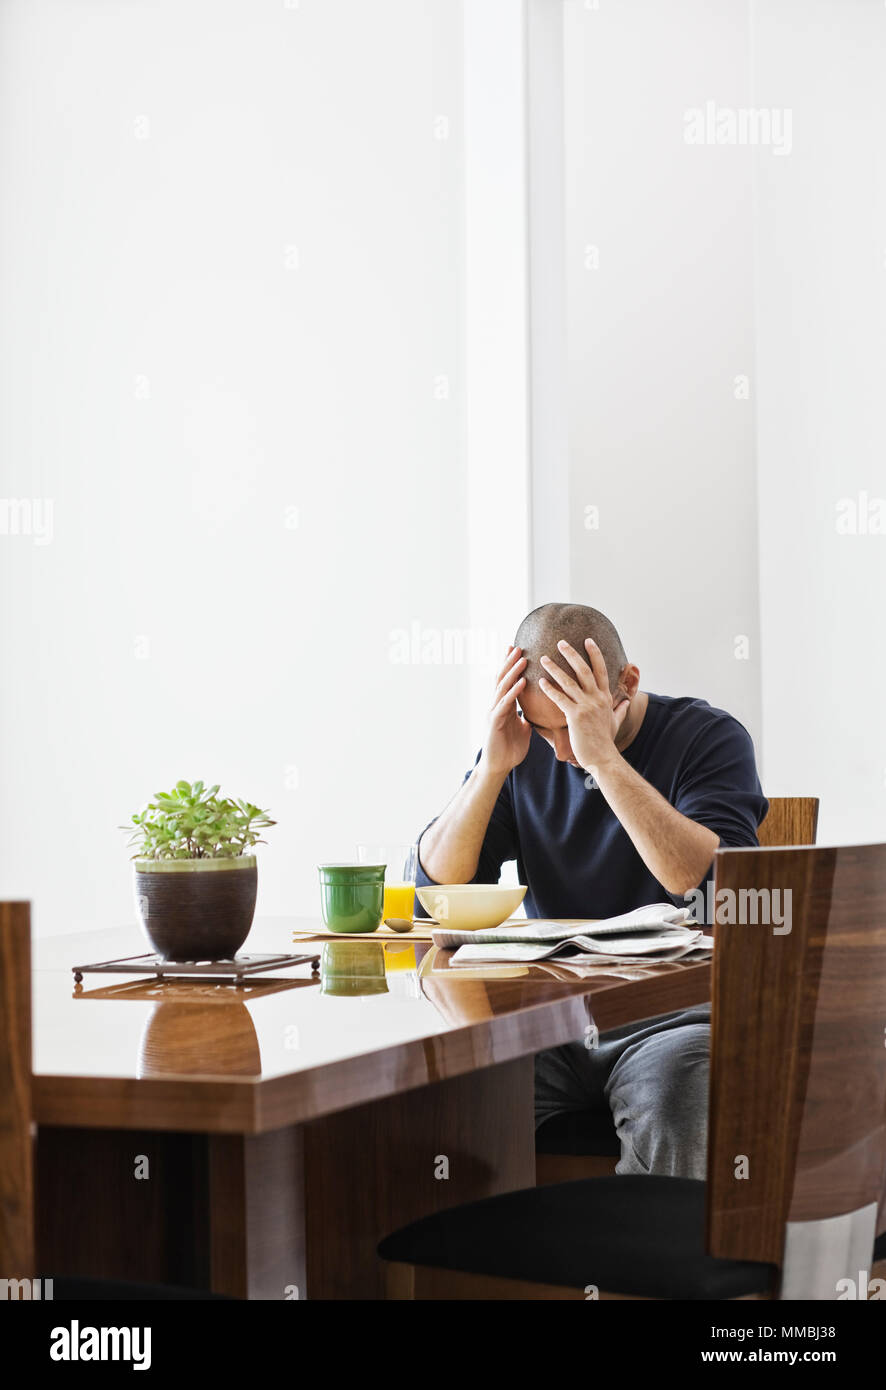 HIspanic man under stress while sitting at the dining room table in a new home. - Stock Image